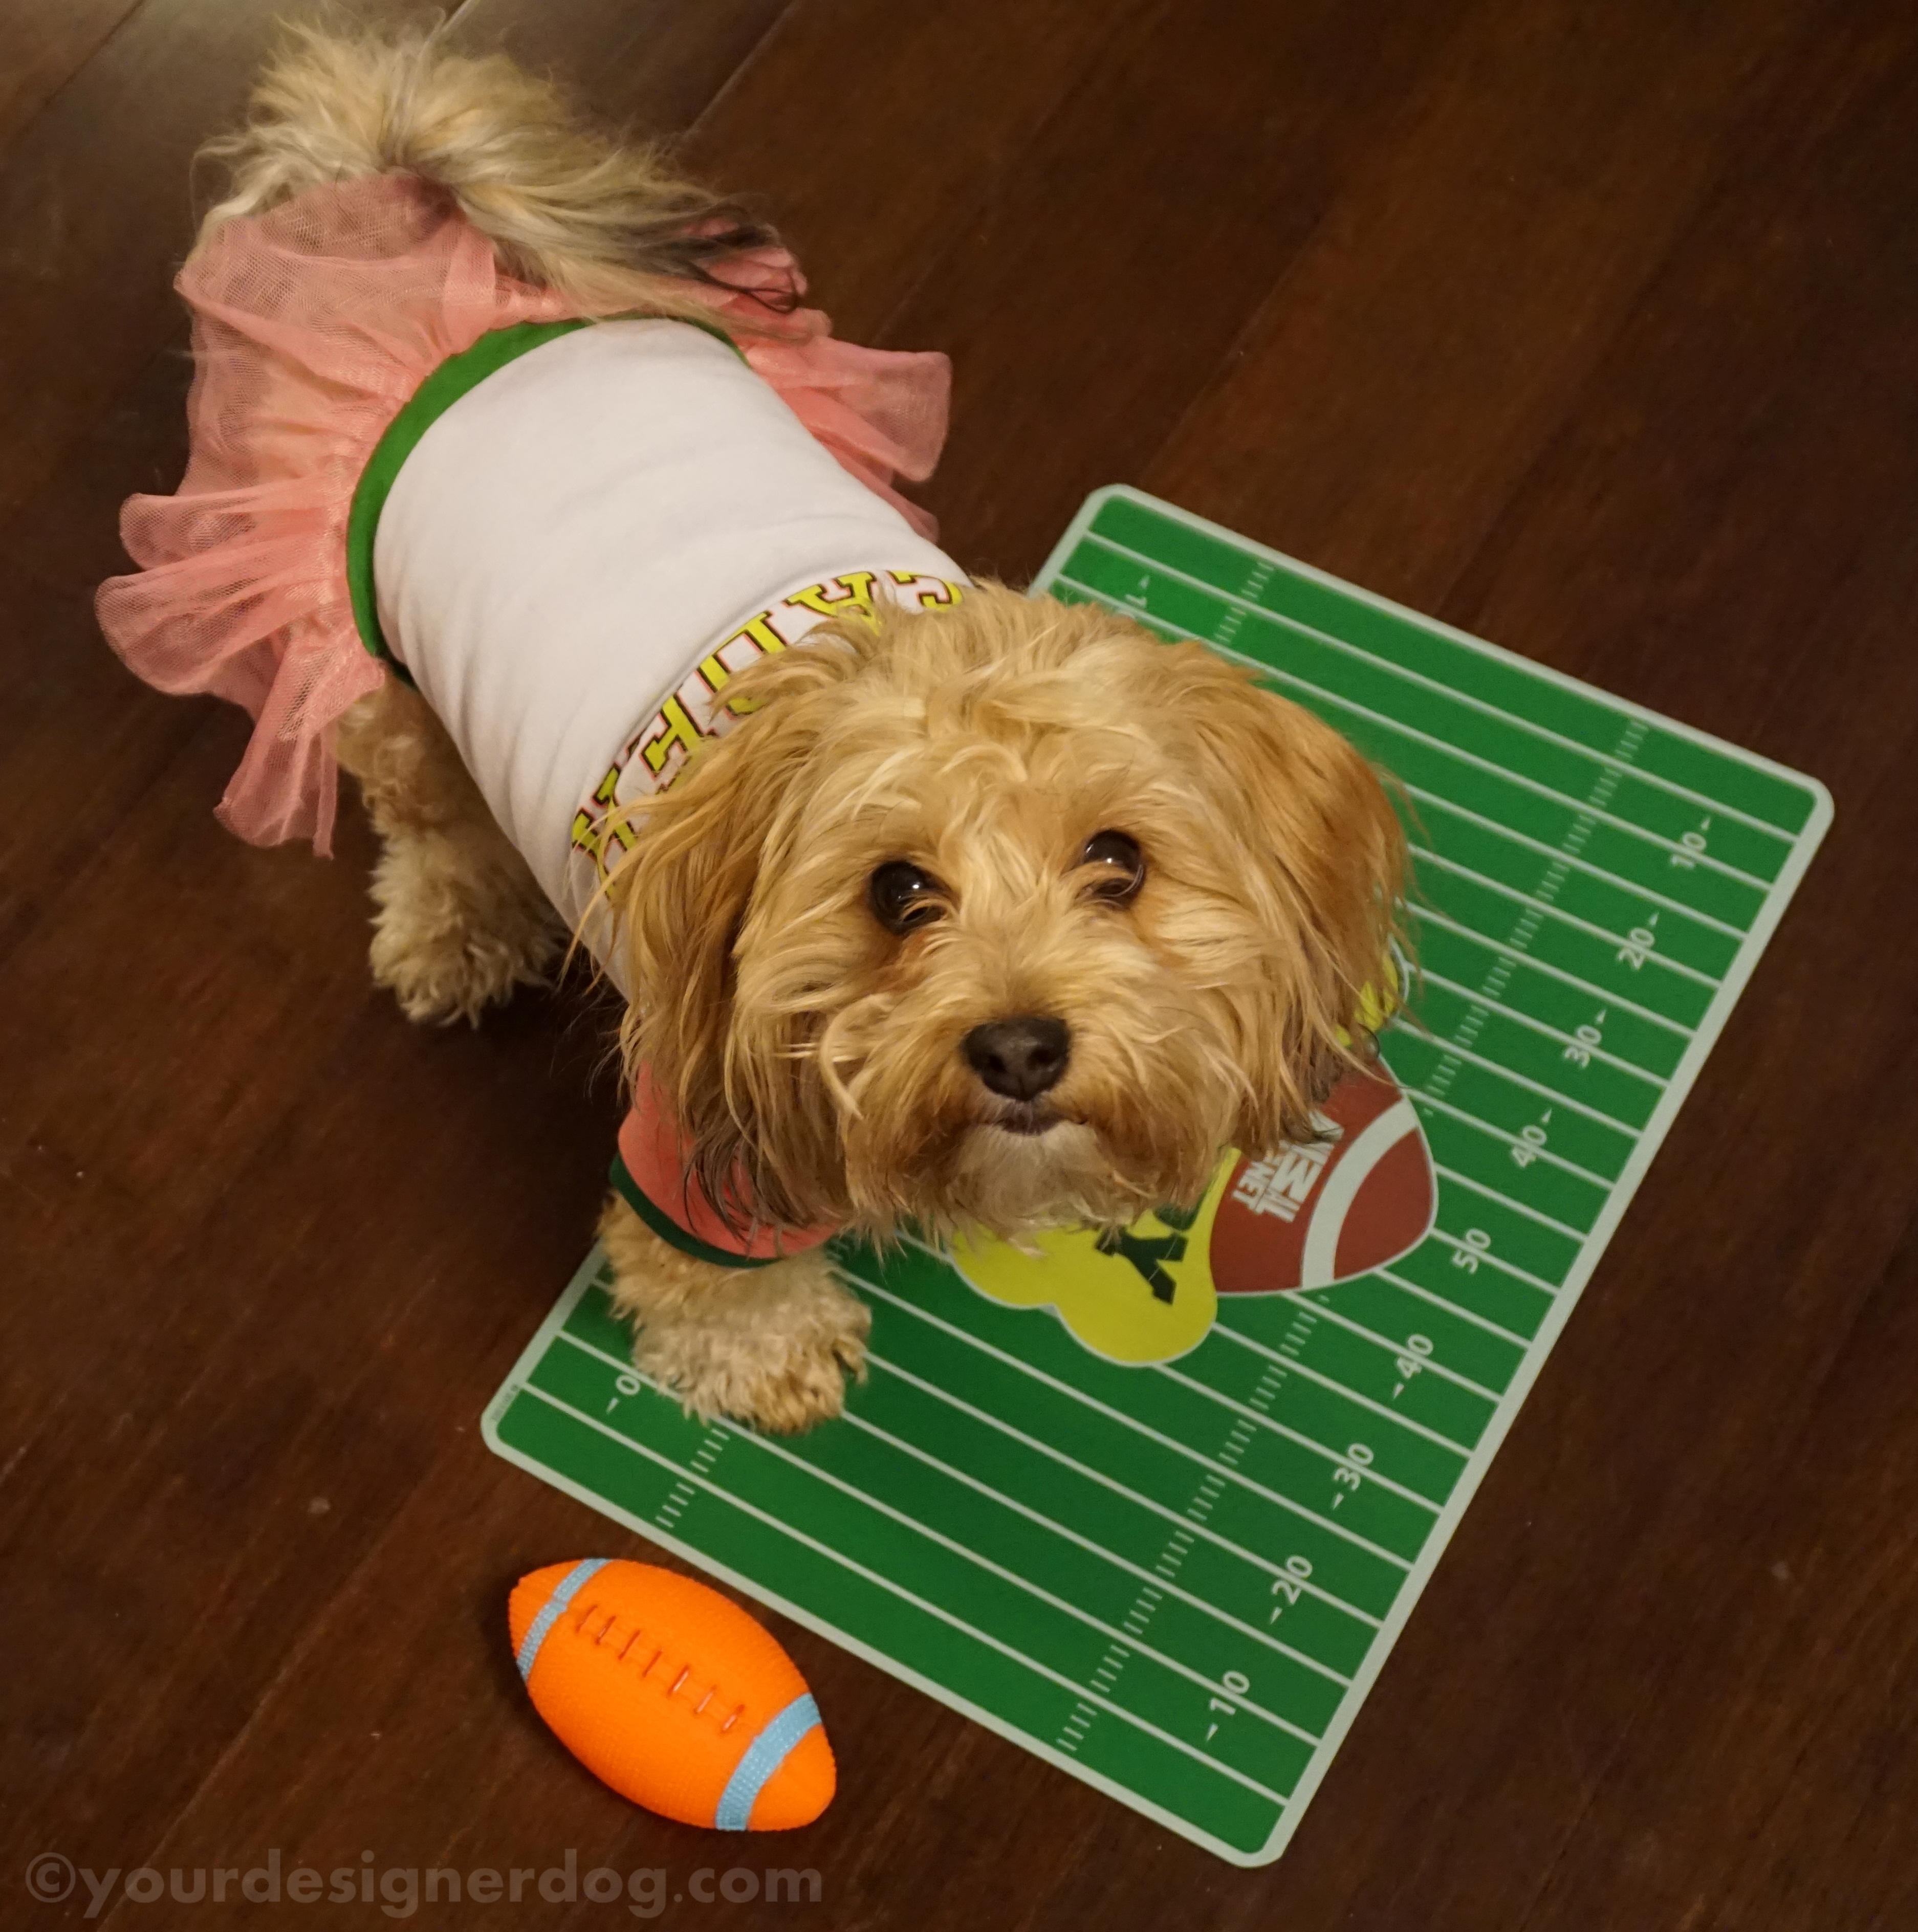 Happy Puppy Bowl (and Super Bowl) Sunday!